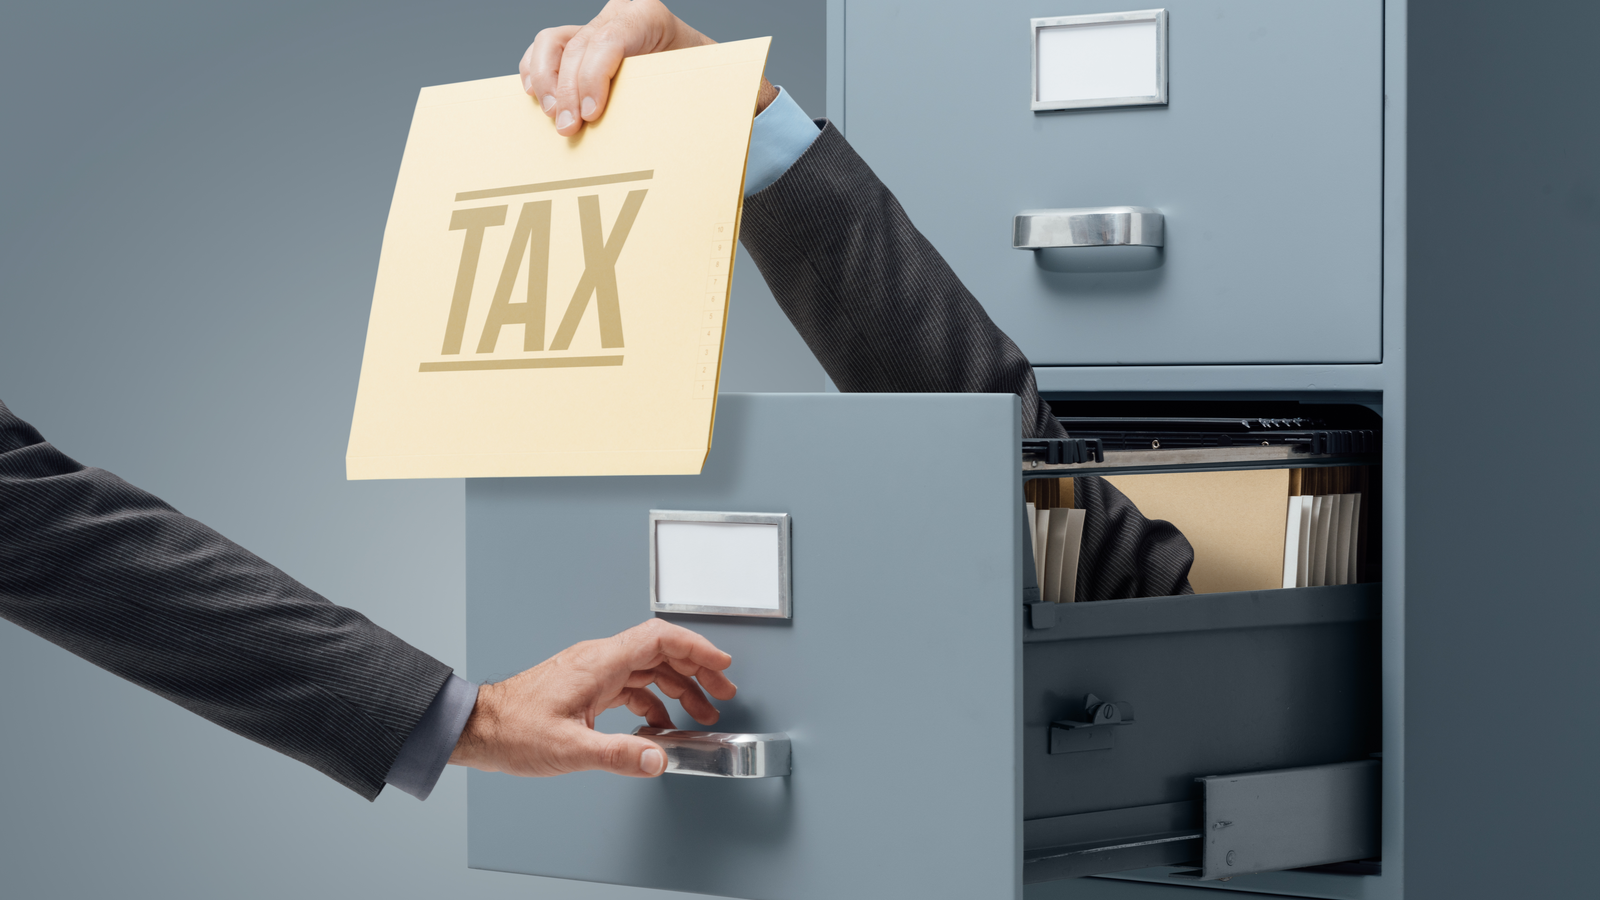 Businessman inside a filing cabinet giving a tax file to an office clerk